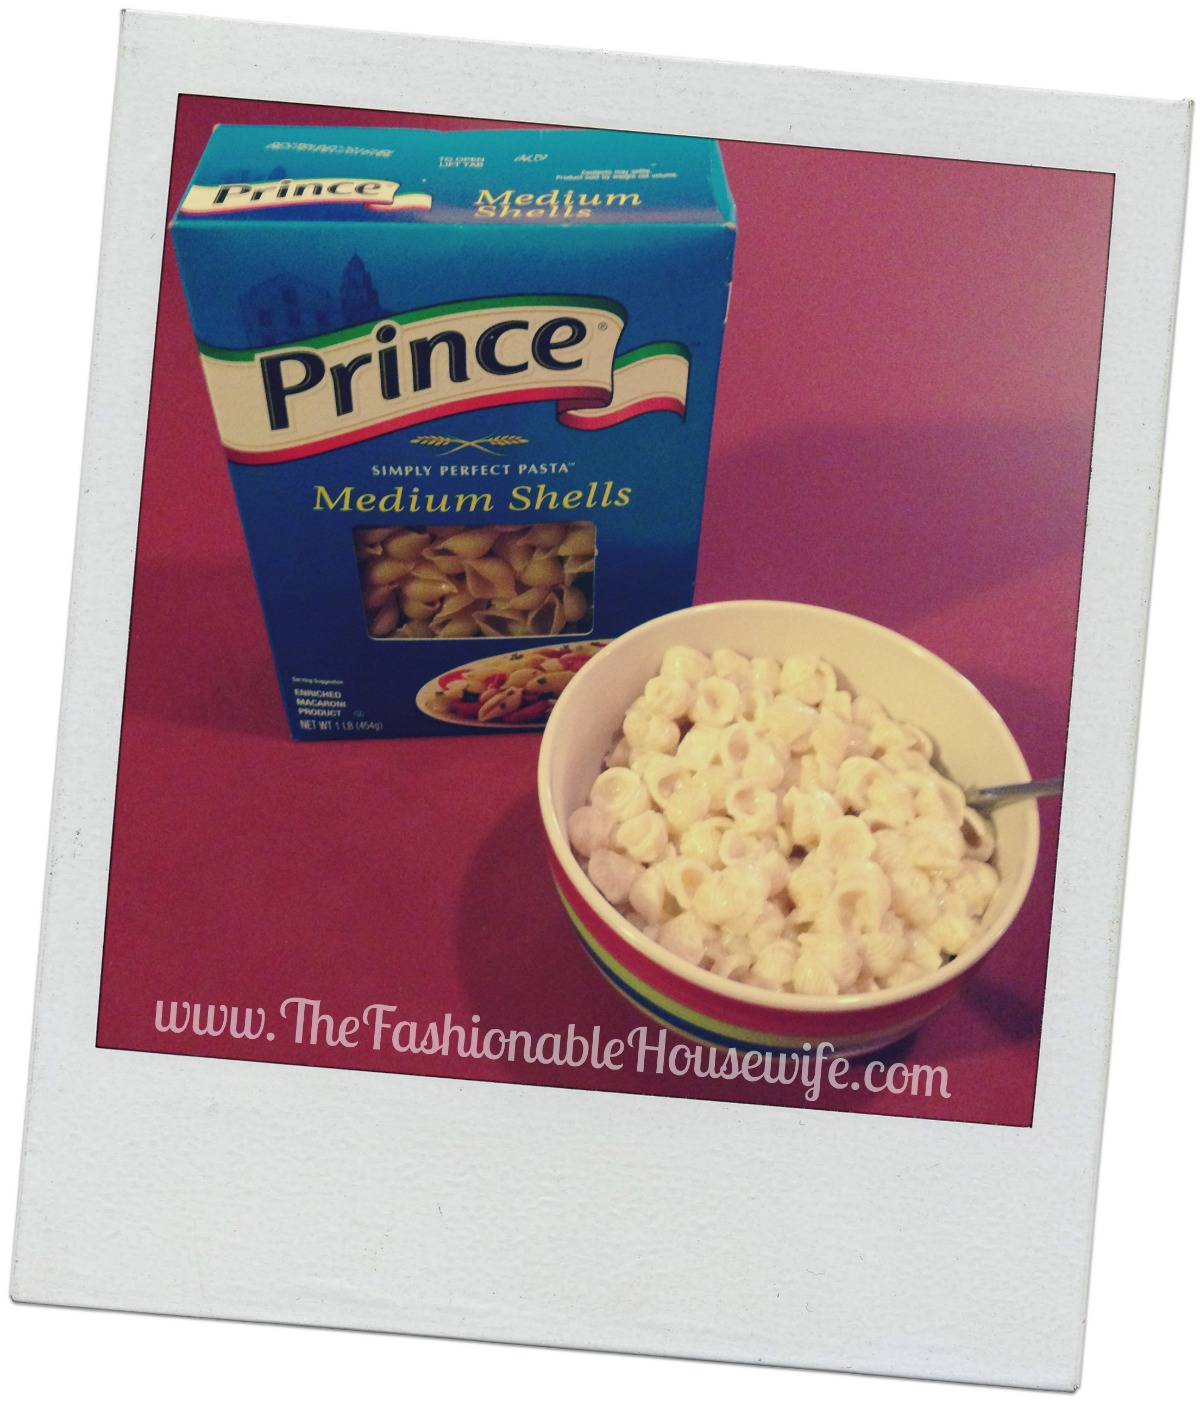 wednesday is prince spaghetti day the fashionable housewife